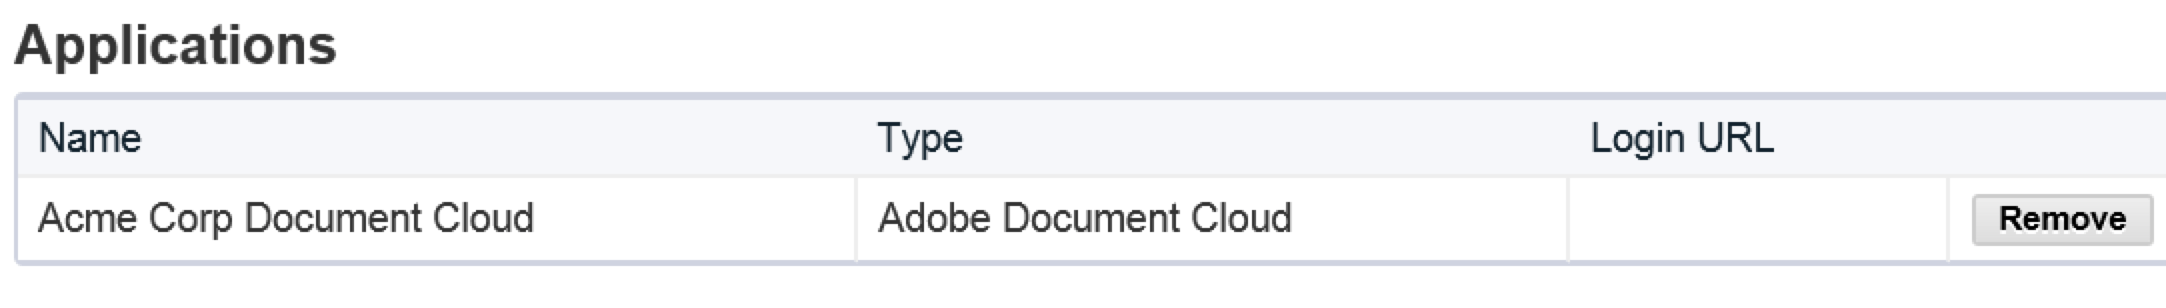 Document Cloud Application Added